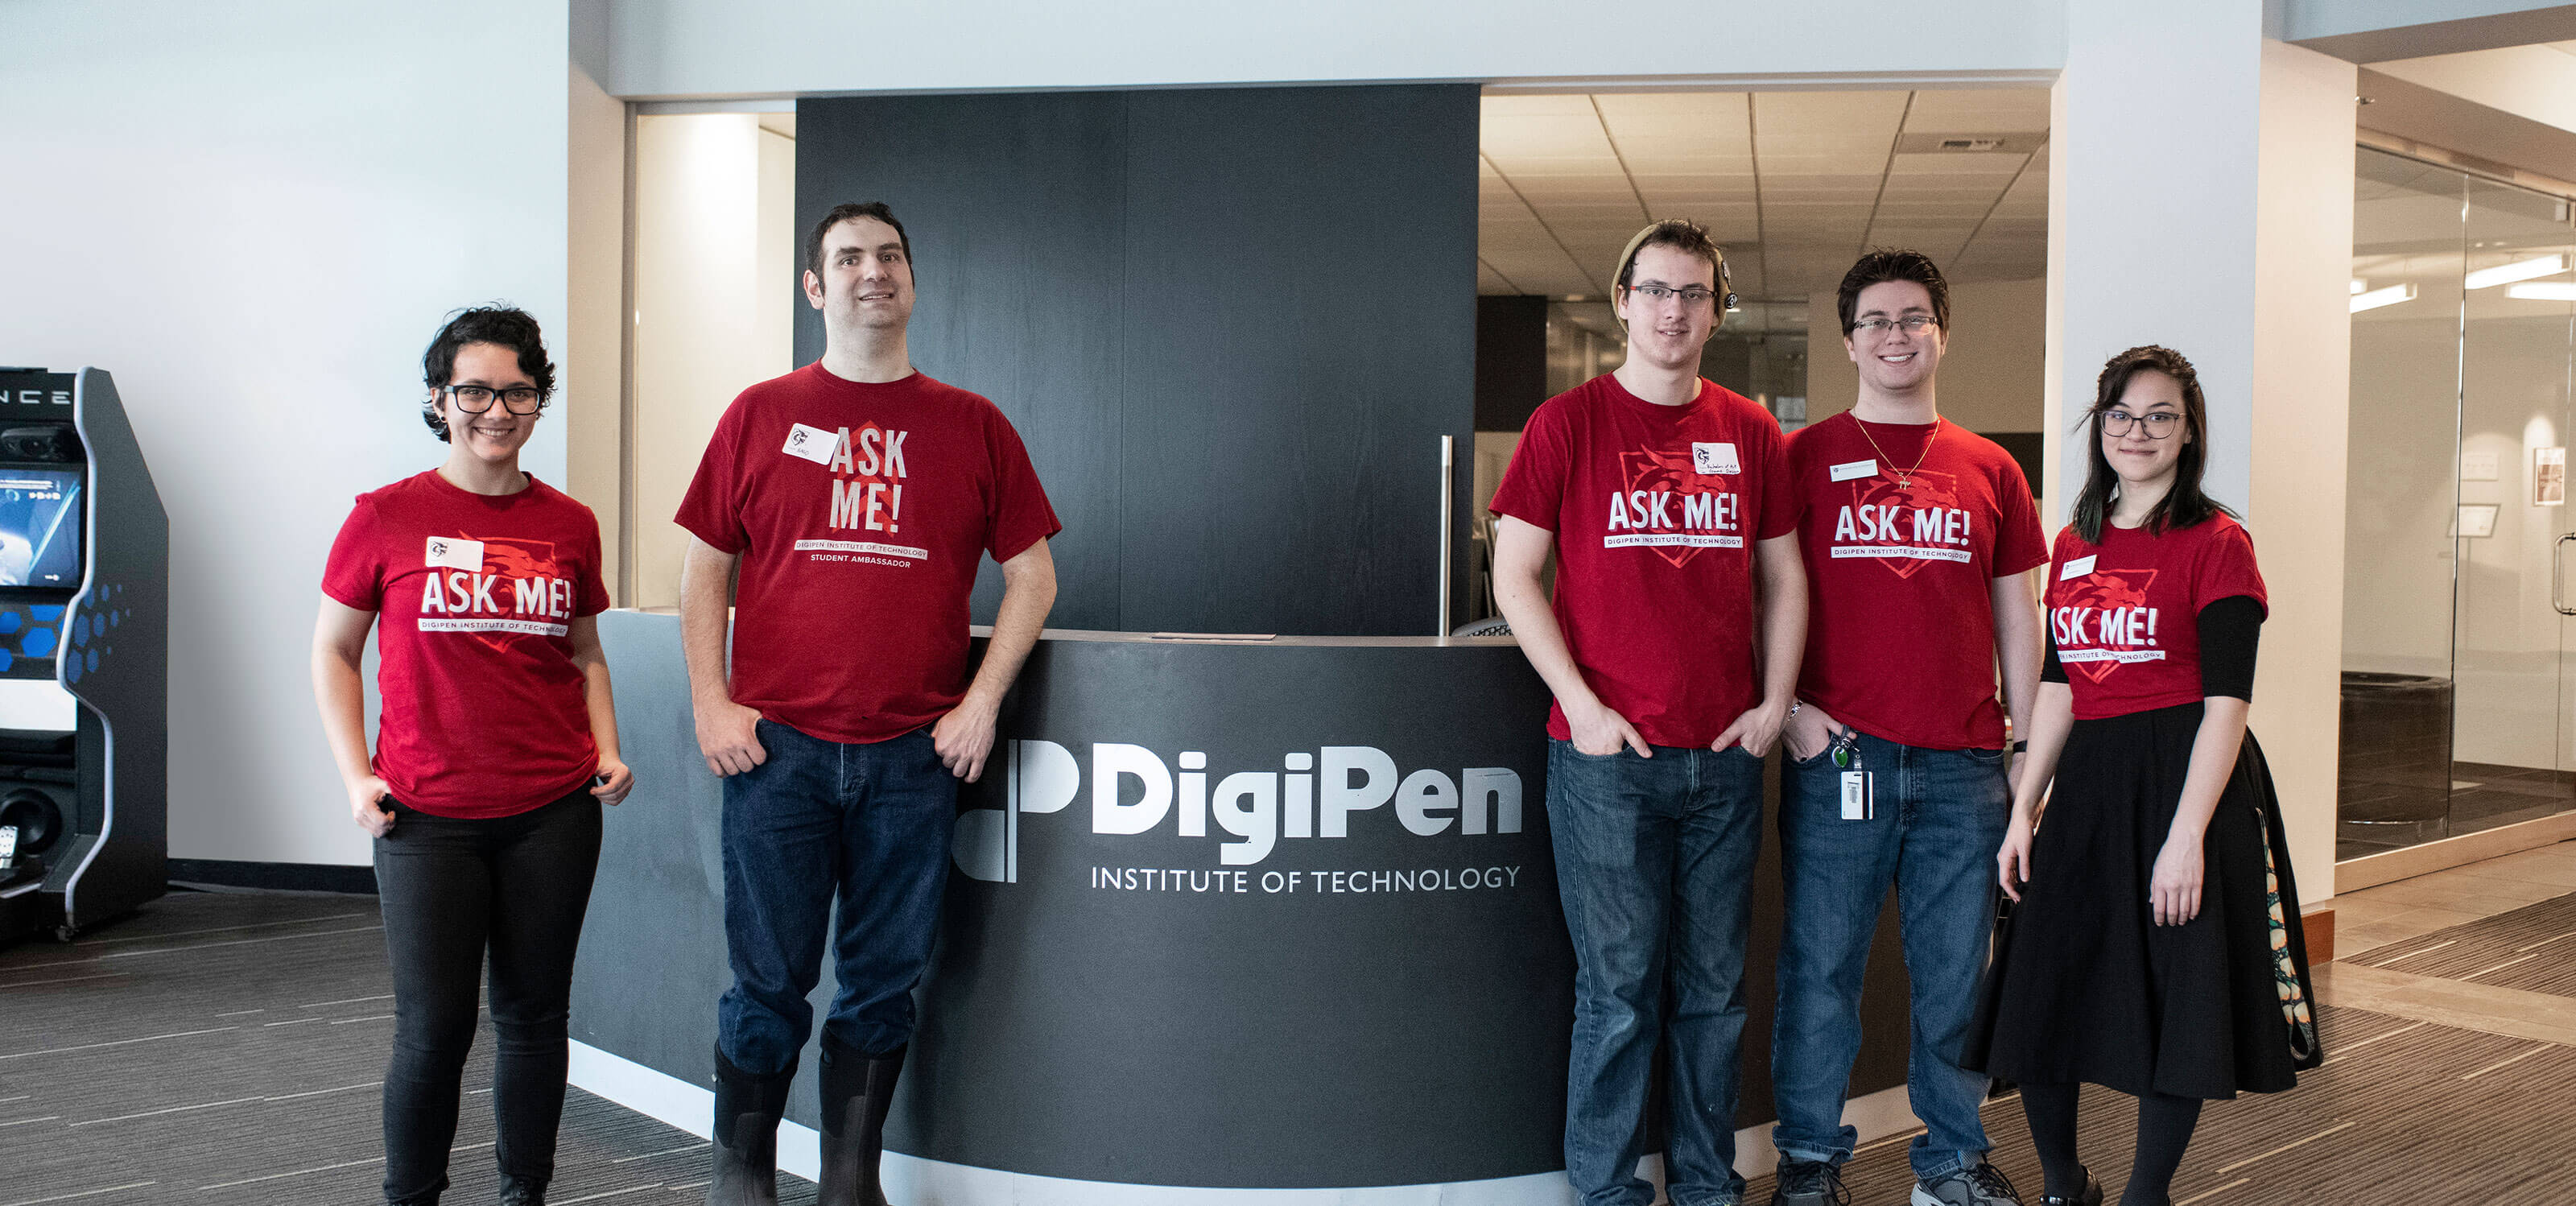 Five people in red t-shirts stand in front of a black desk with DigiPen Institute of Technology written in white letters.